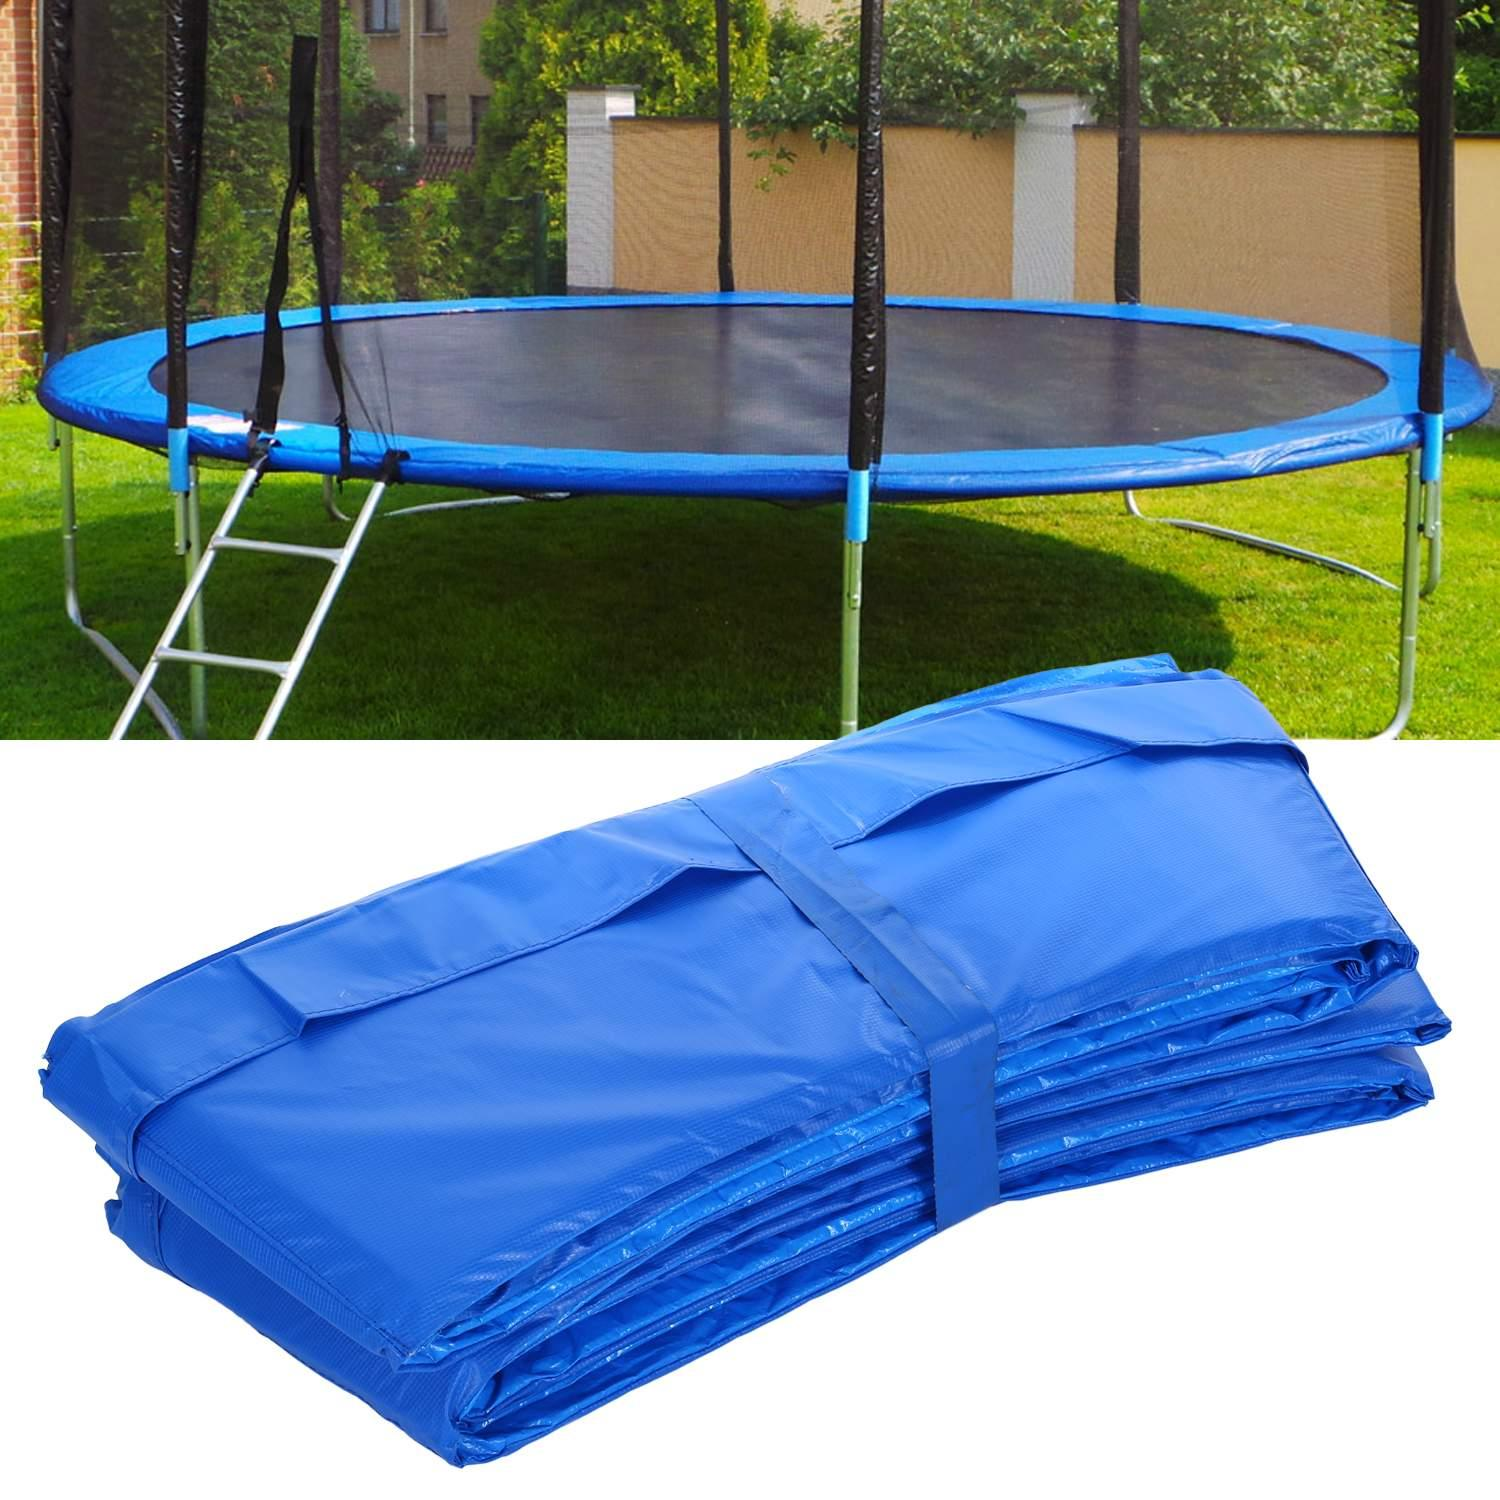 Safety Trampoline Pad Cover Round Frame For 12ft